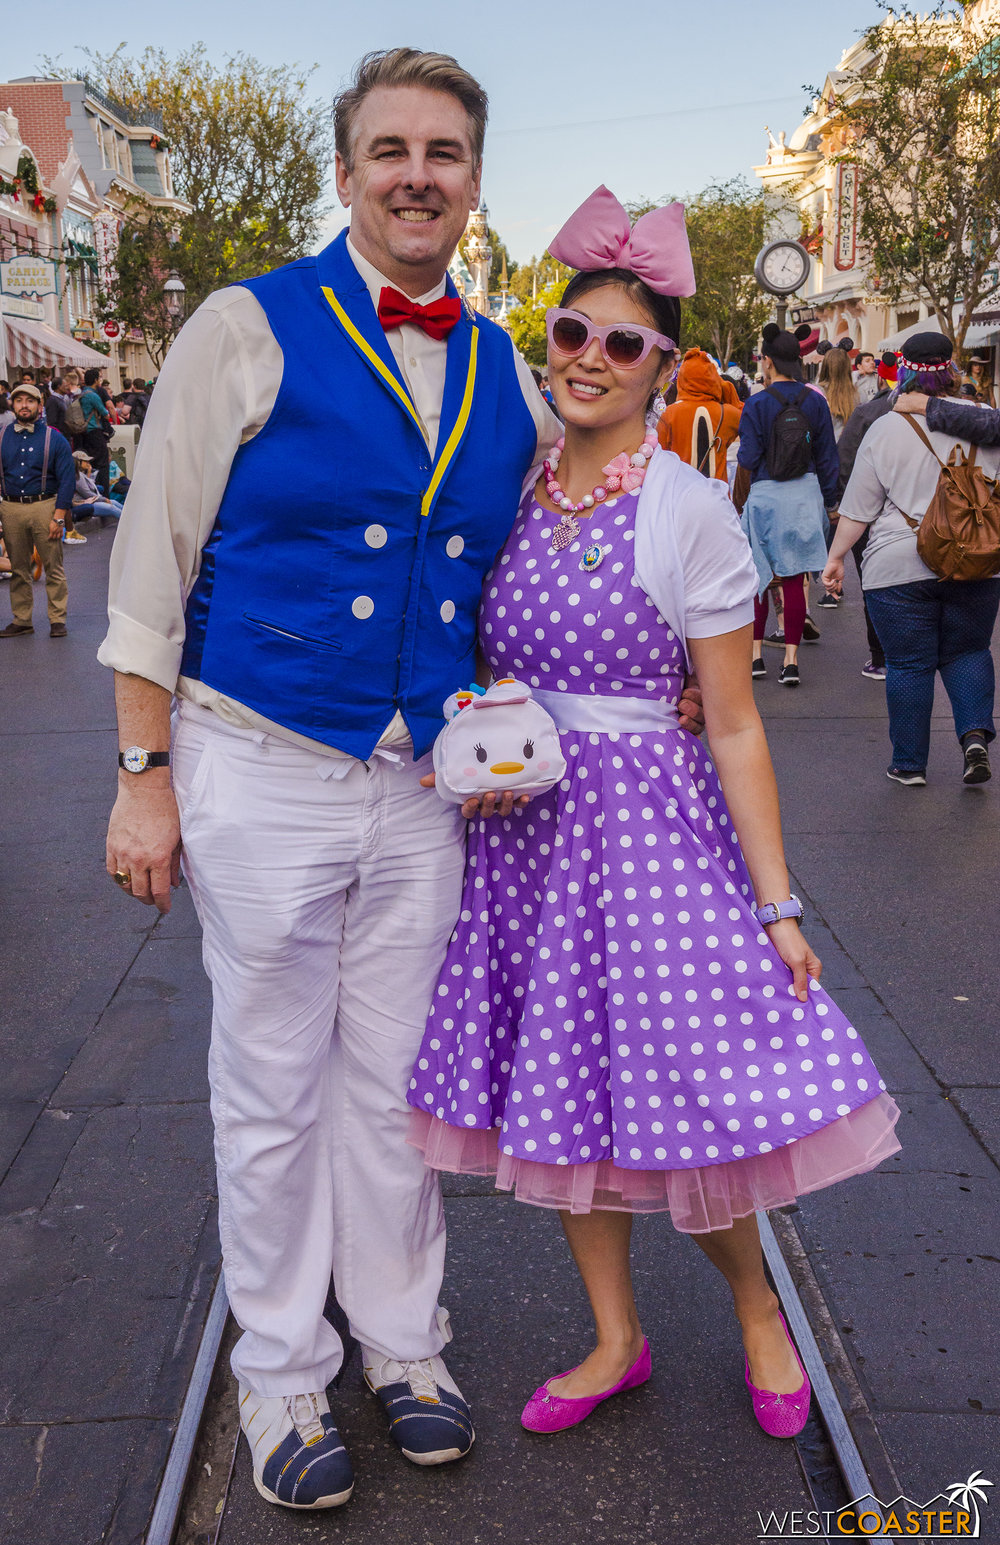 This adorable couple brought a Donald and Daisy spin to things.